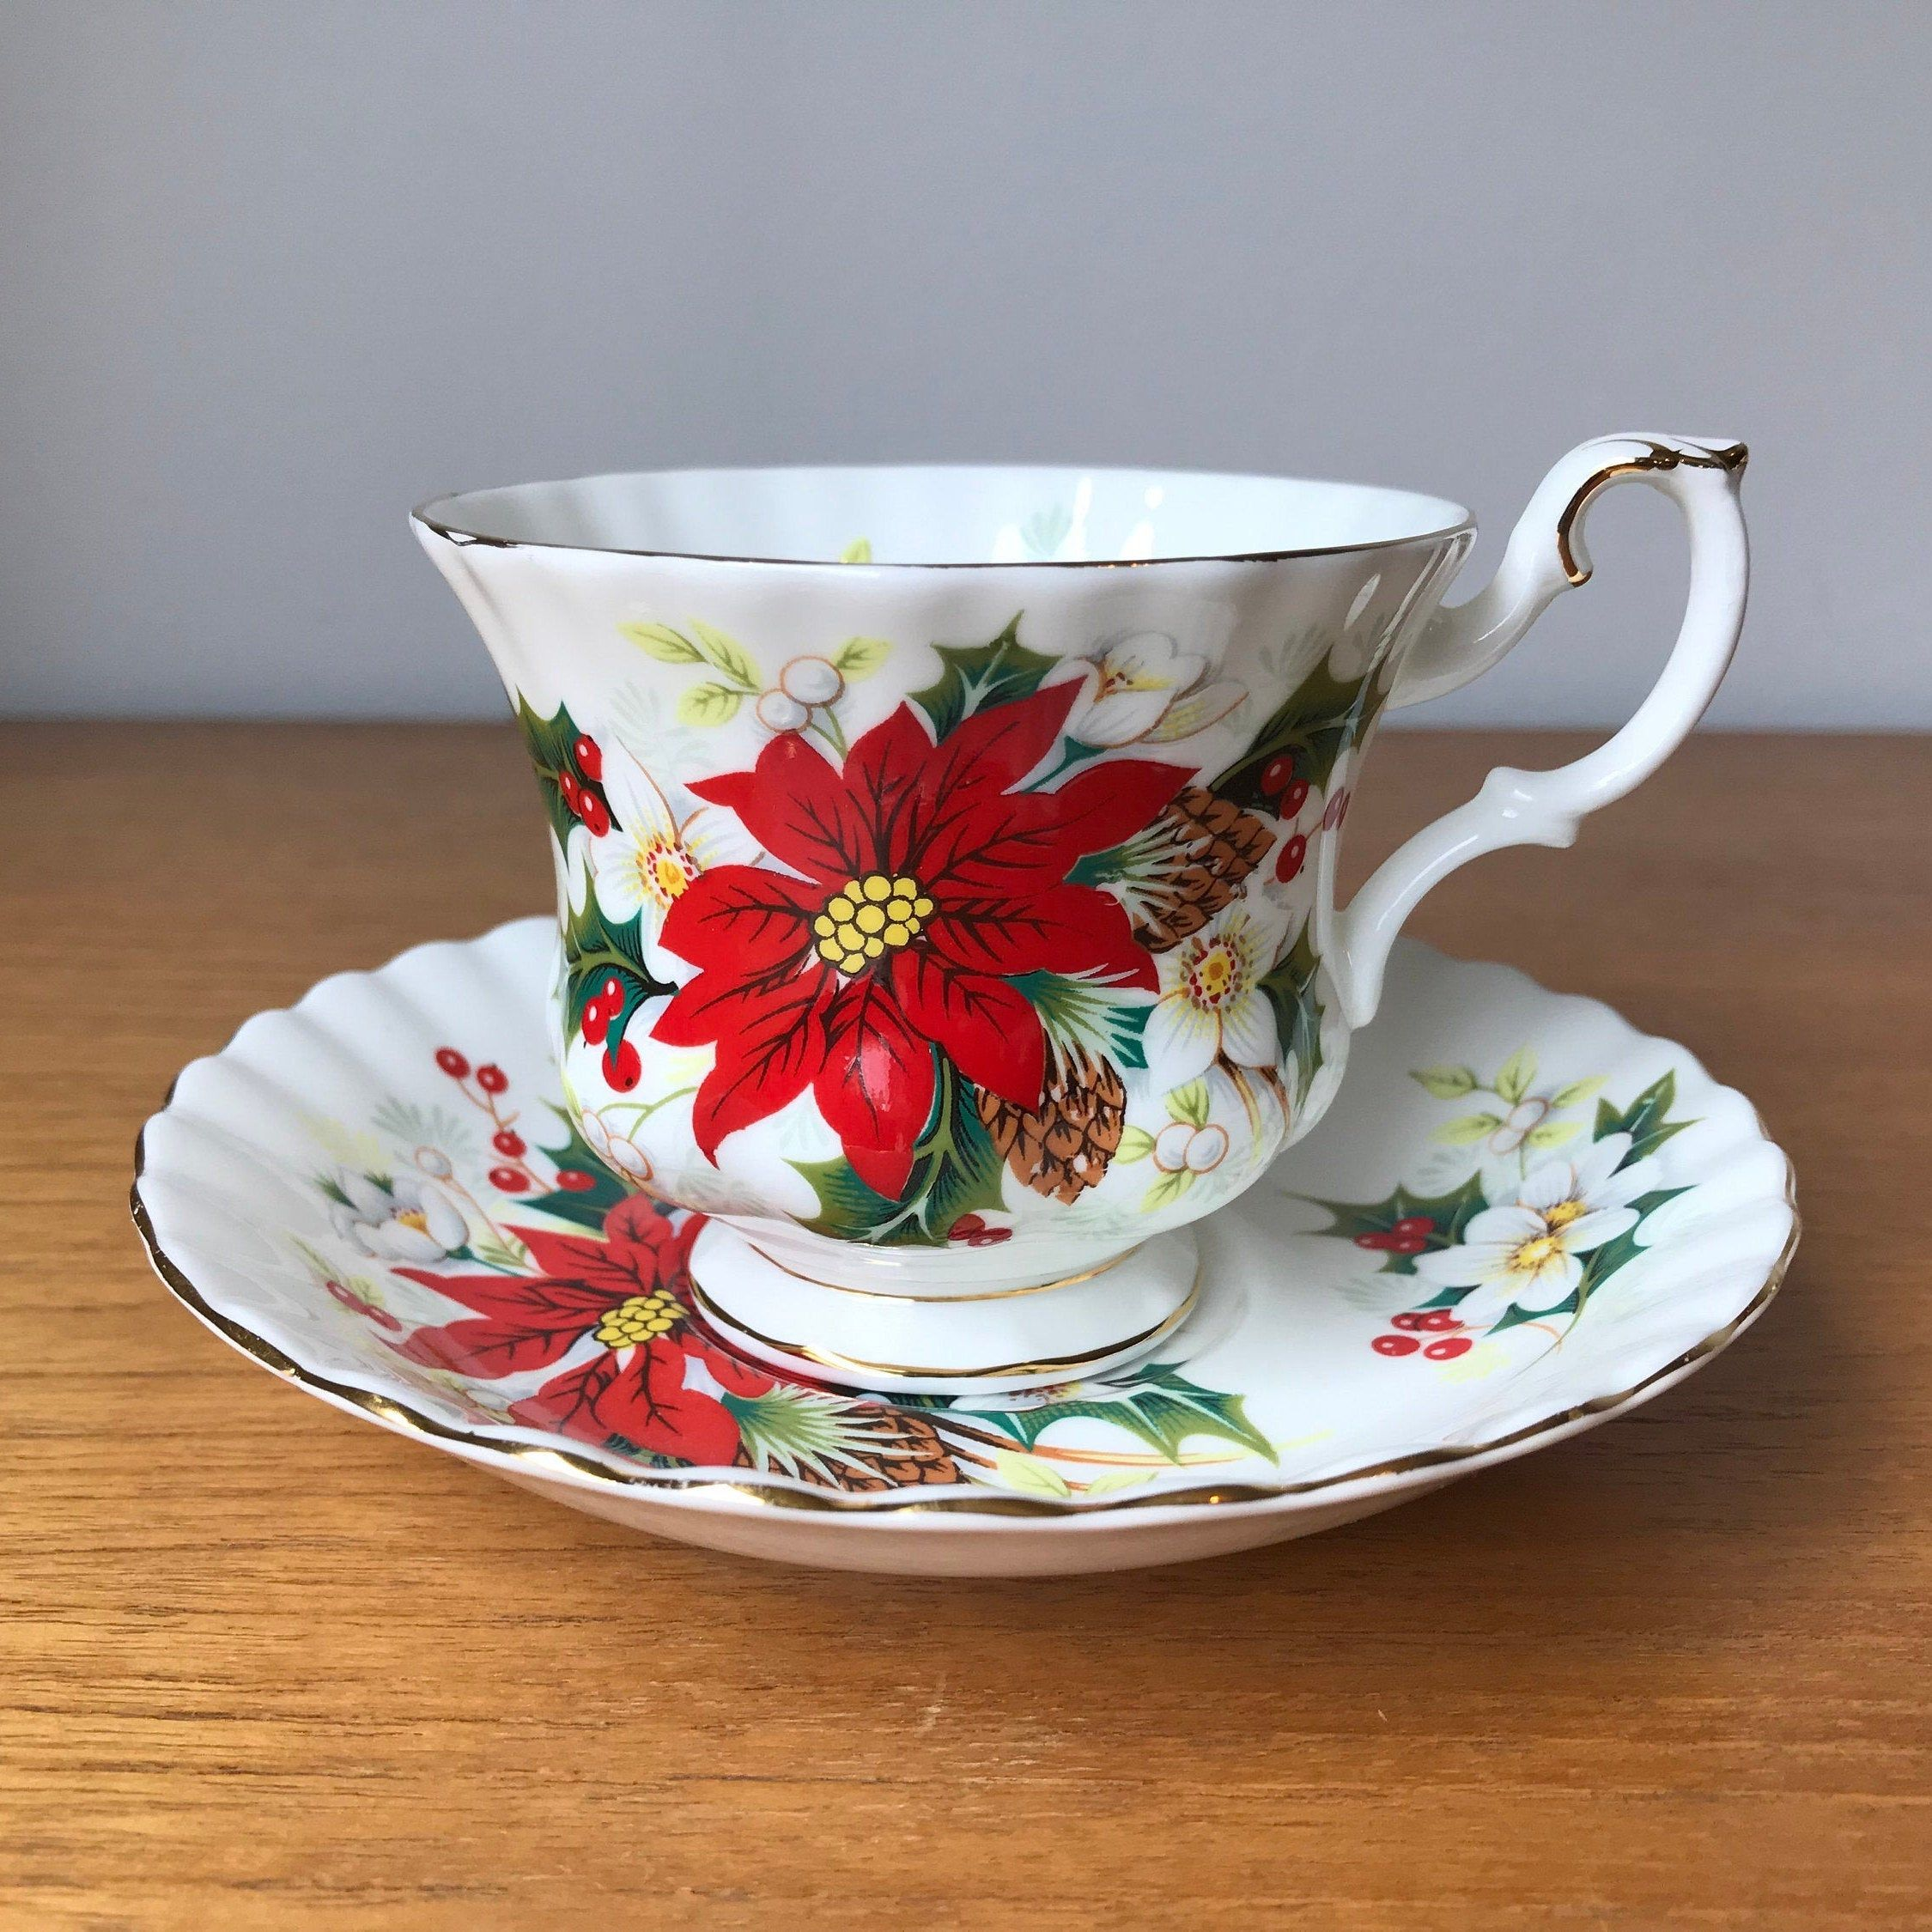 s Royal Albert Poinsettia Tea Cup Vintage England Made Excellent Holly Berry Yuletide Christmas Holiday and Saucer s